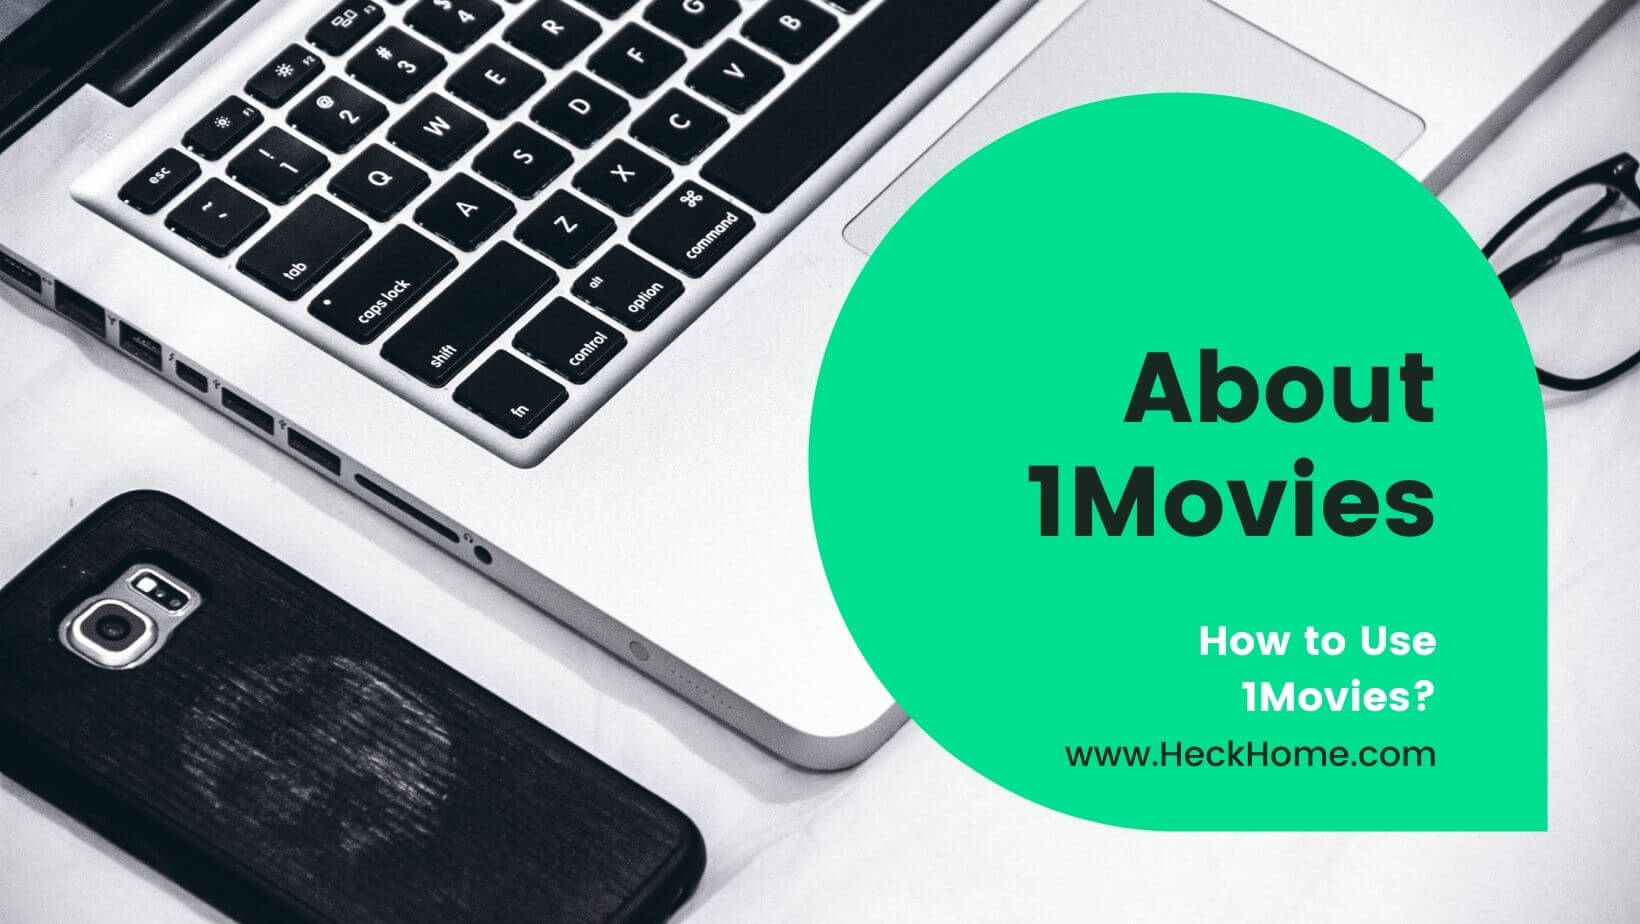 Guide to tell How to Use 1Movies?